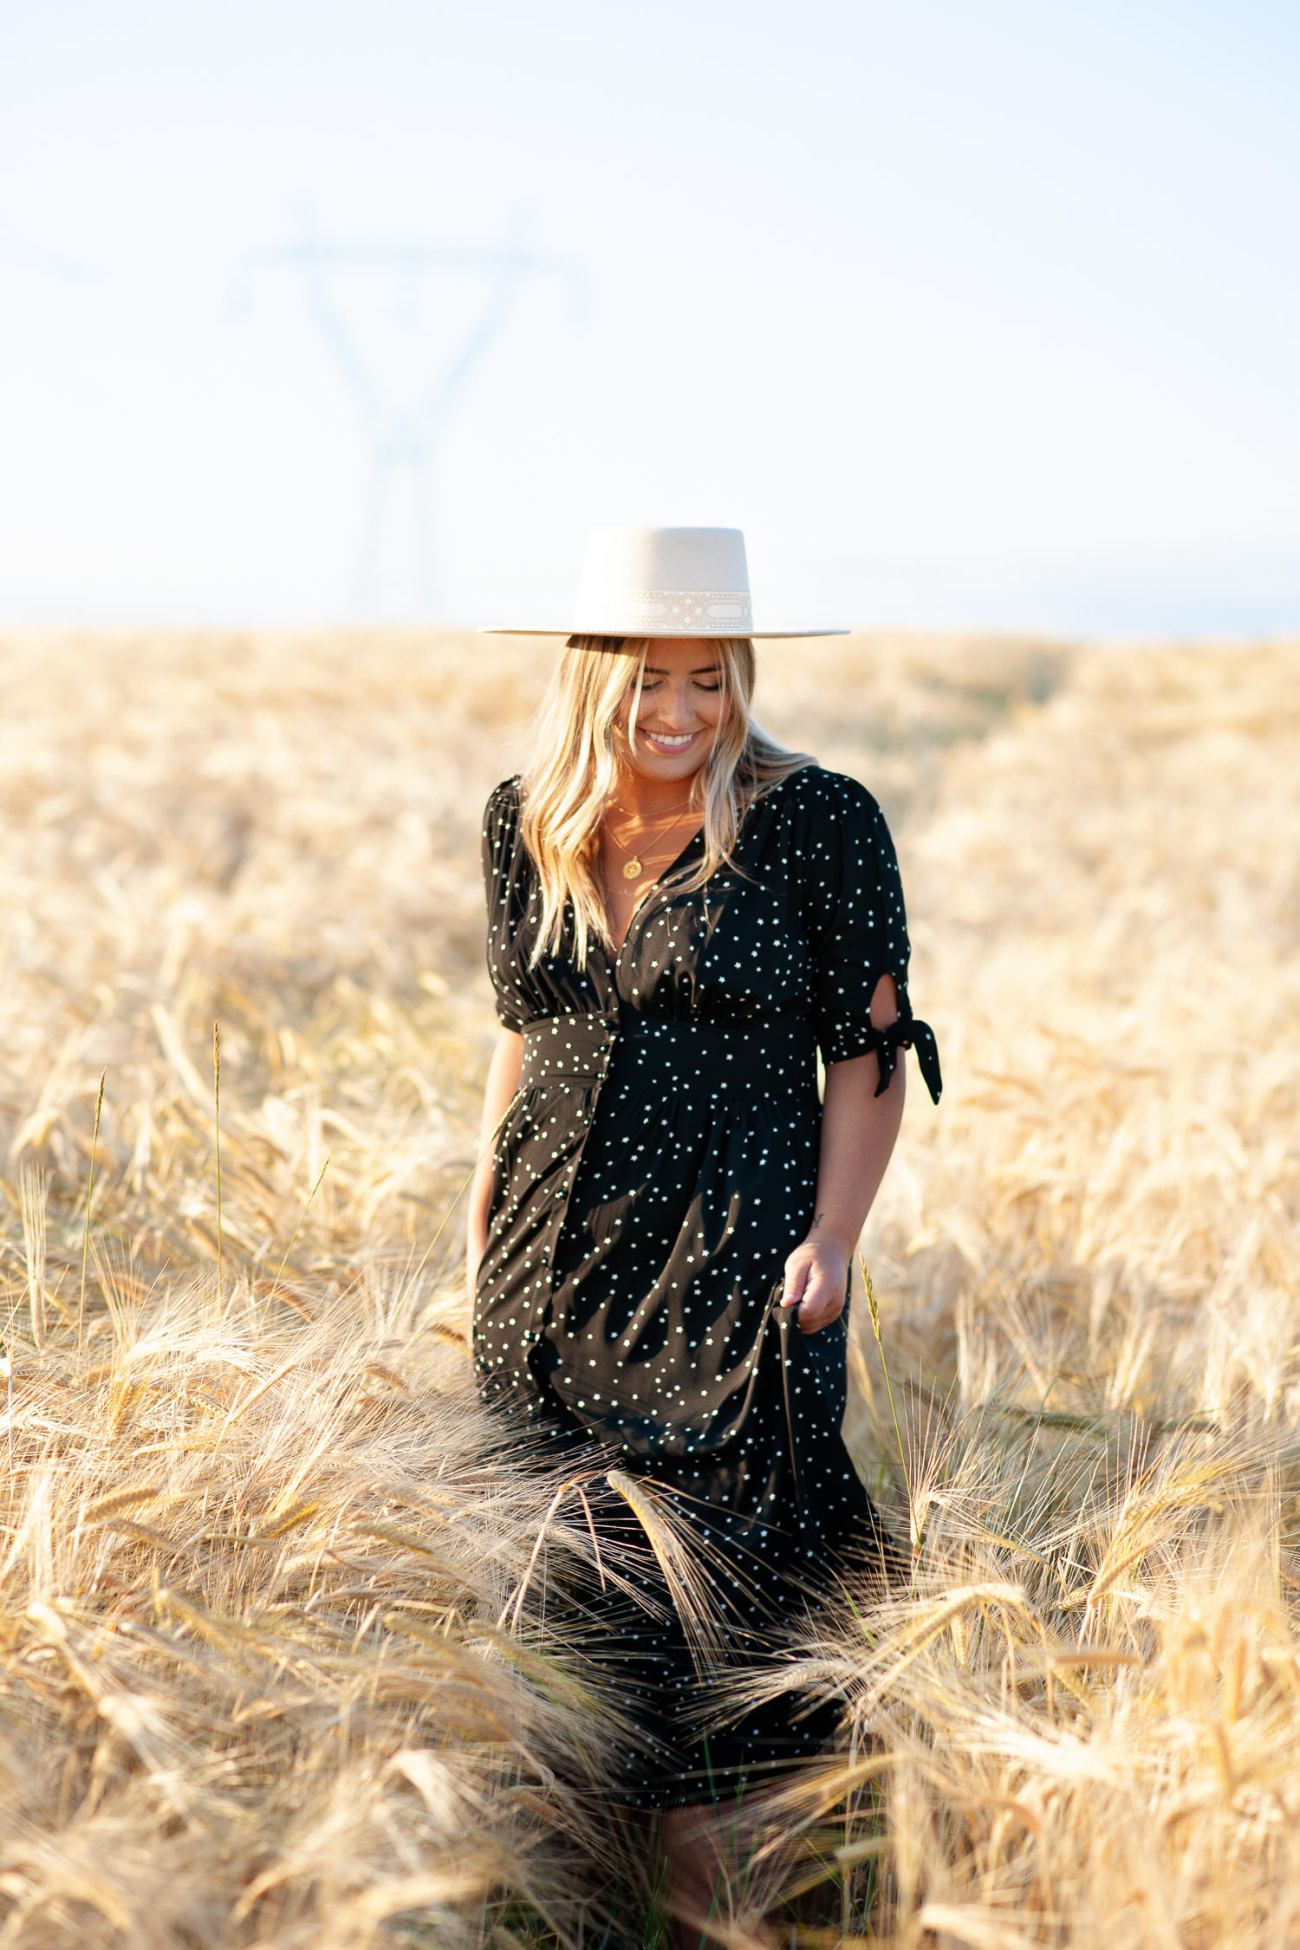 Wondering what to wear for your engagement session? This bride wore a pretty black dress captured by Tara Whittaker Photography